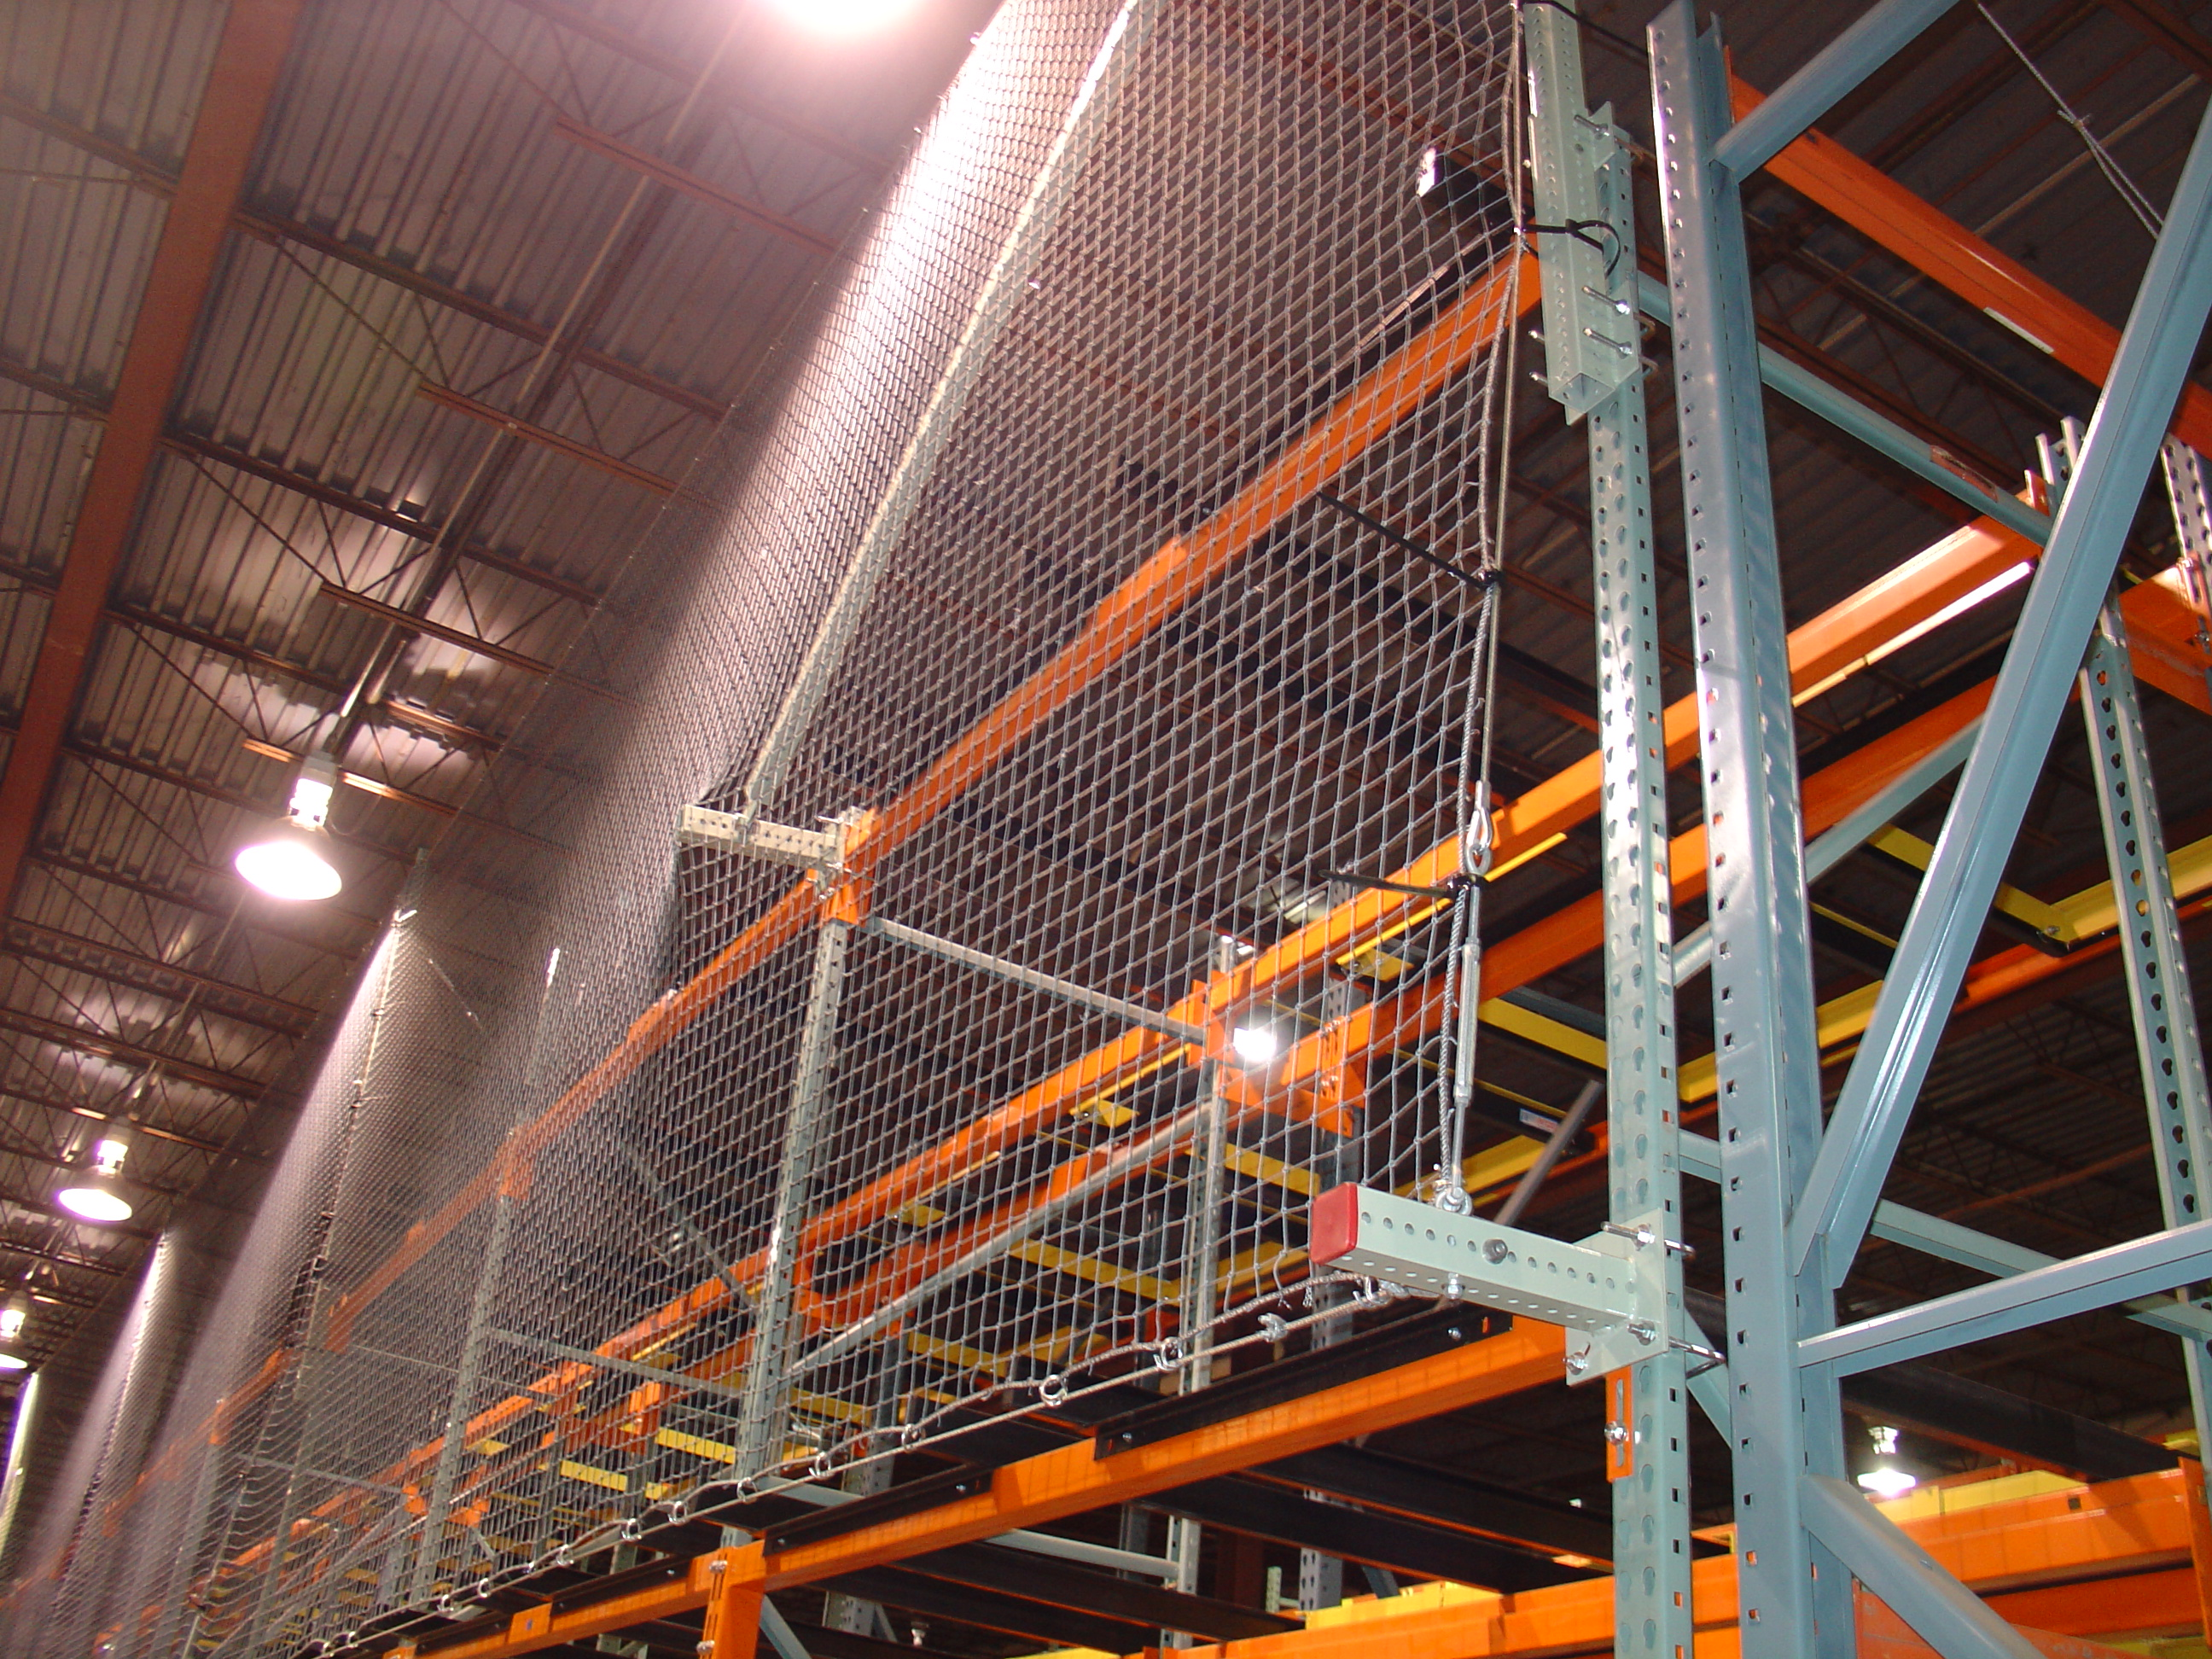 Used Pallet Rack Safety Netting